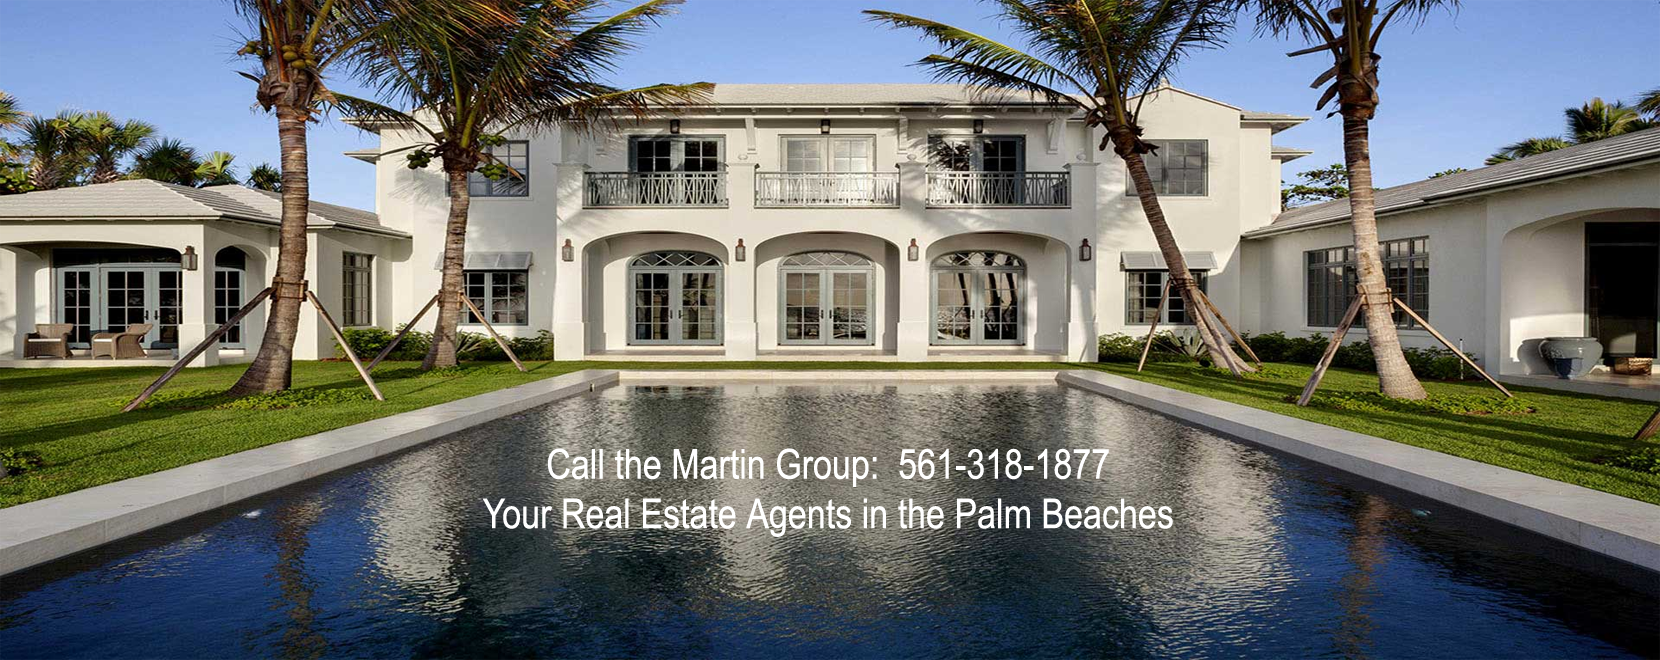 FLPalmBeach.com Real Estate Blog Martin Group Keller Williams